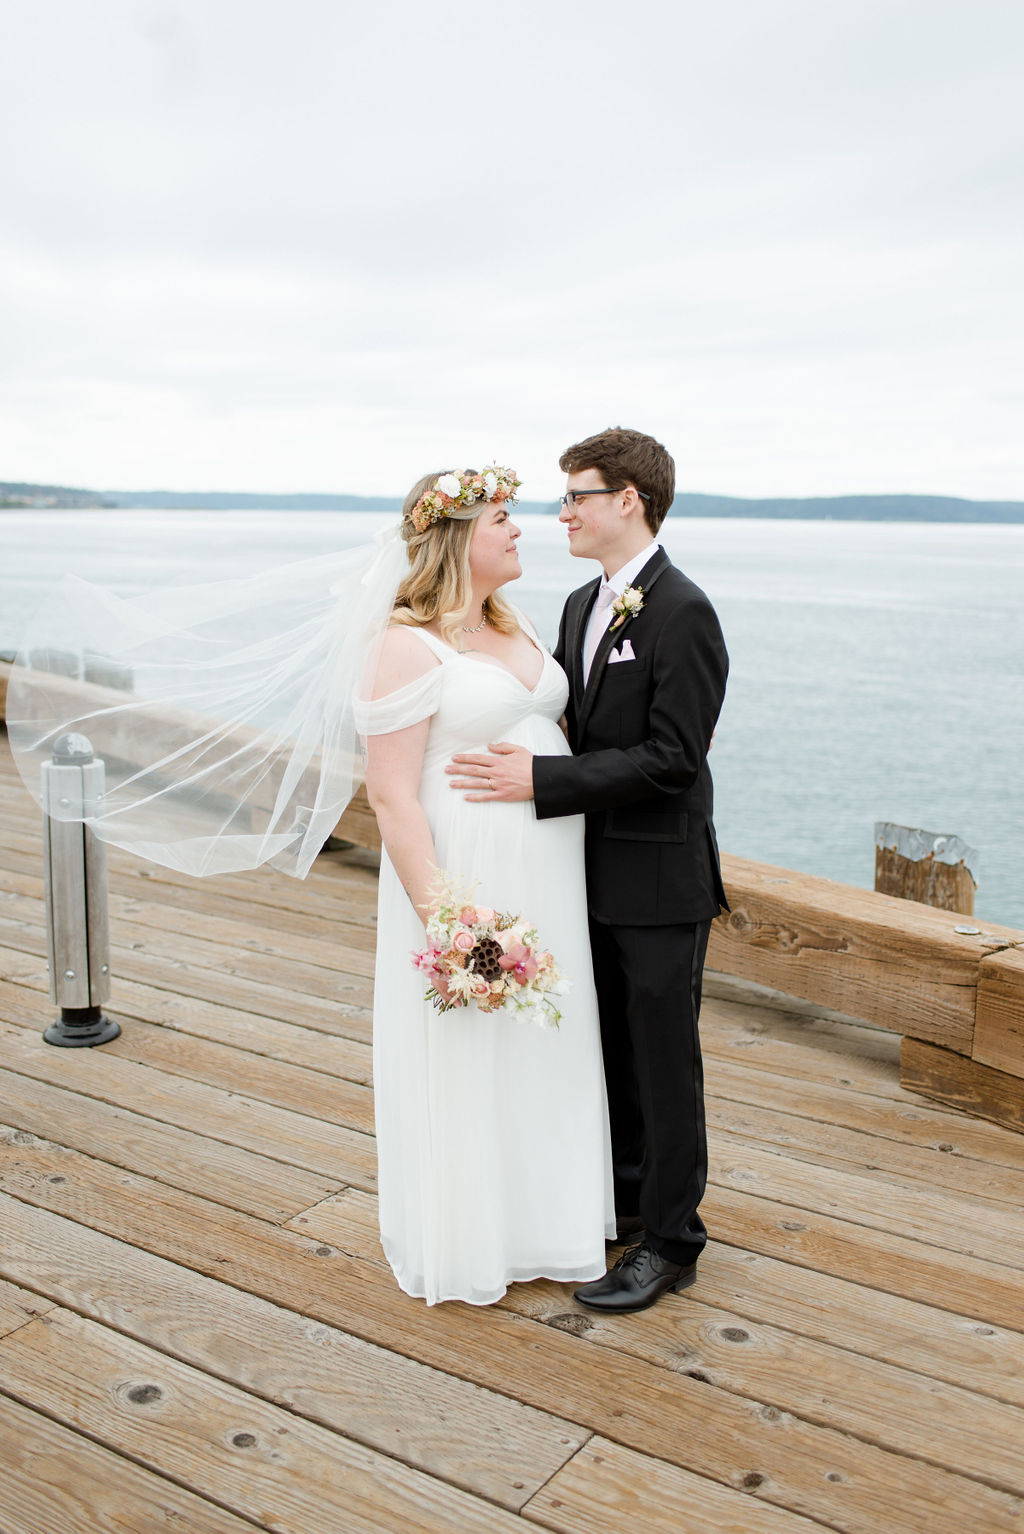 Newlyweds on Old town dock in Tacoma